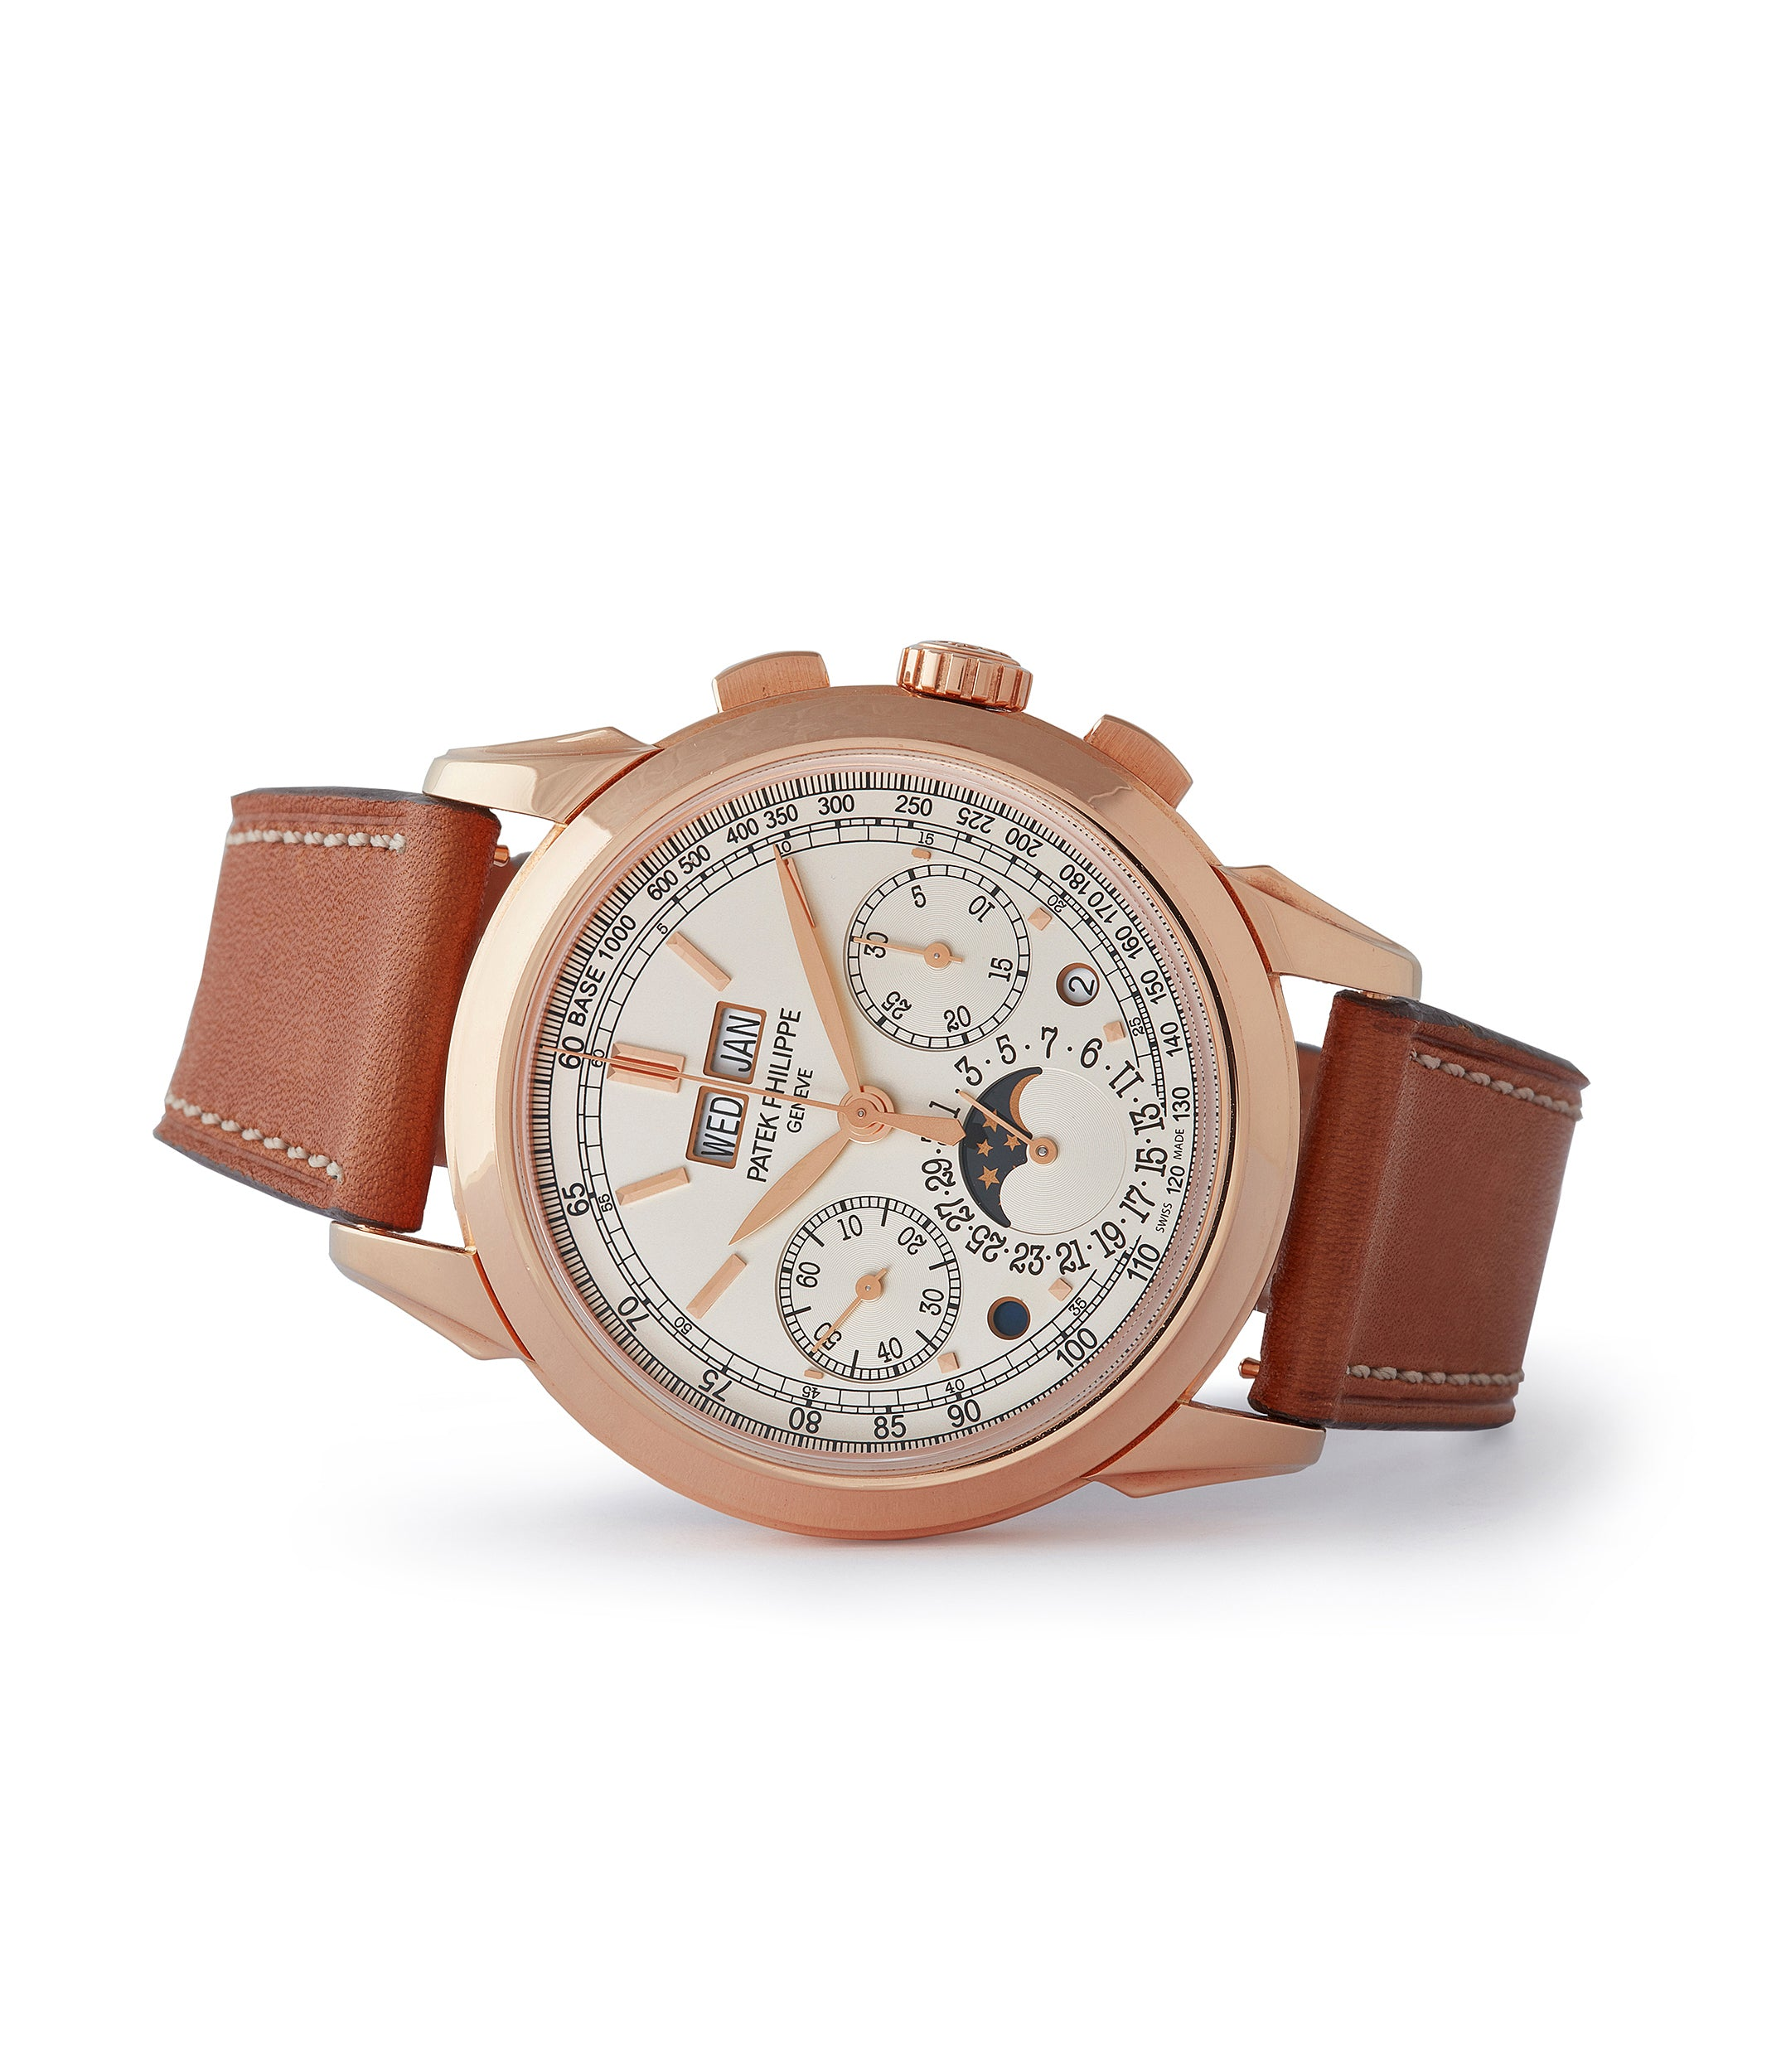 side-shot rare Patek Philippe 5270R Grand Complications Perpetual Calendar Chronograph rose gold dress watch for sale online at A Collected Man London UK specialist of rare watches